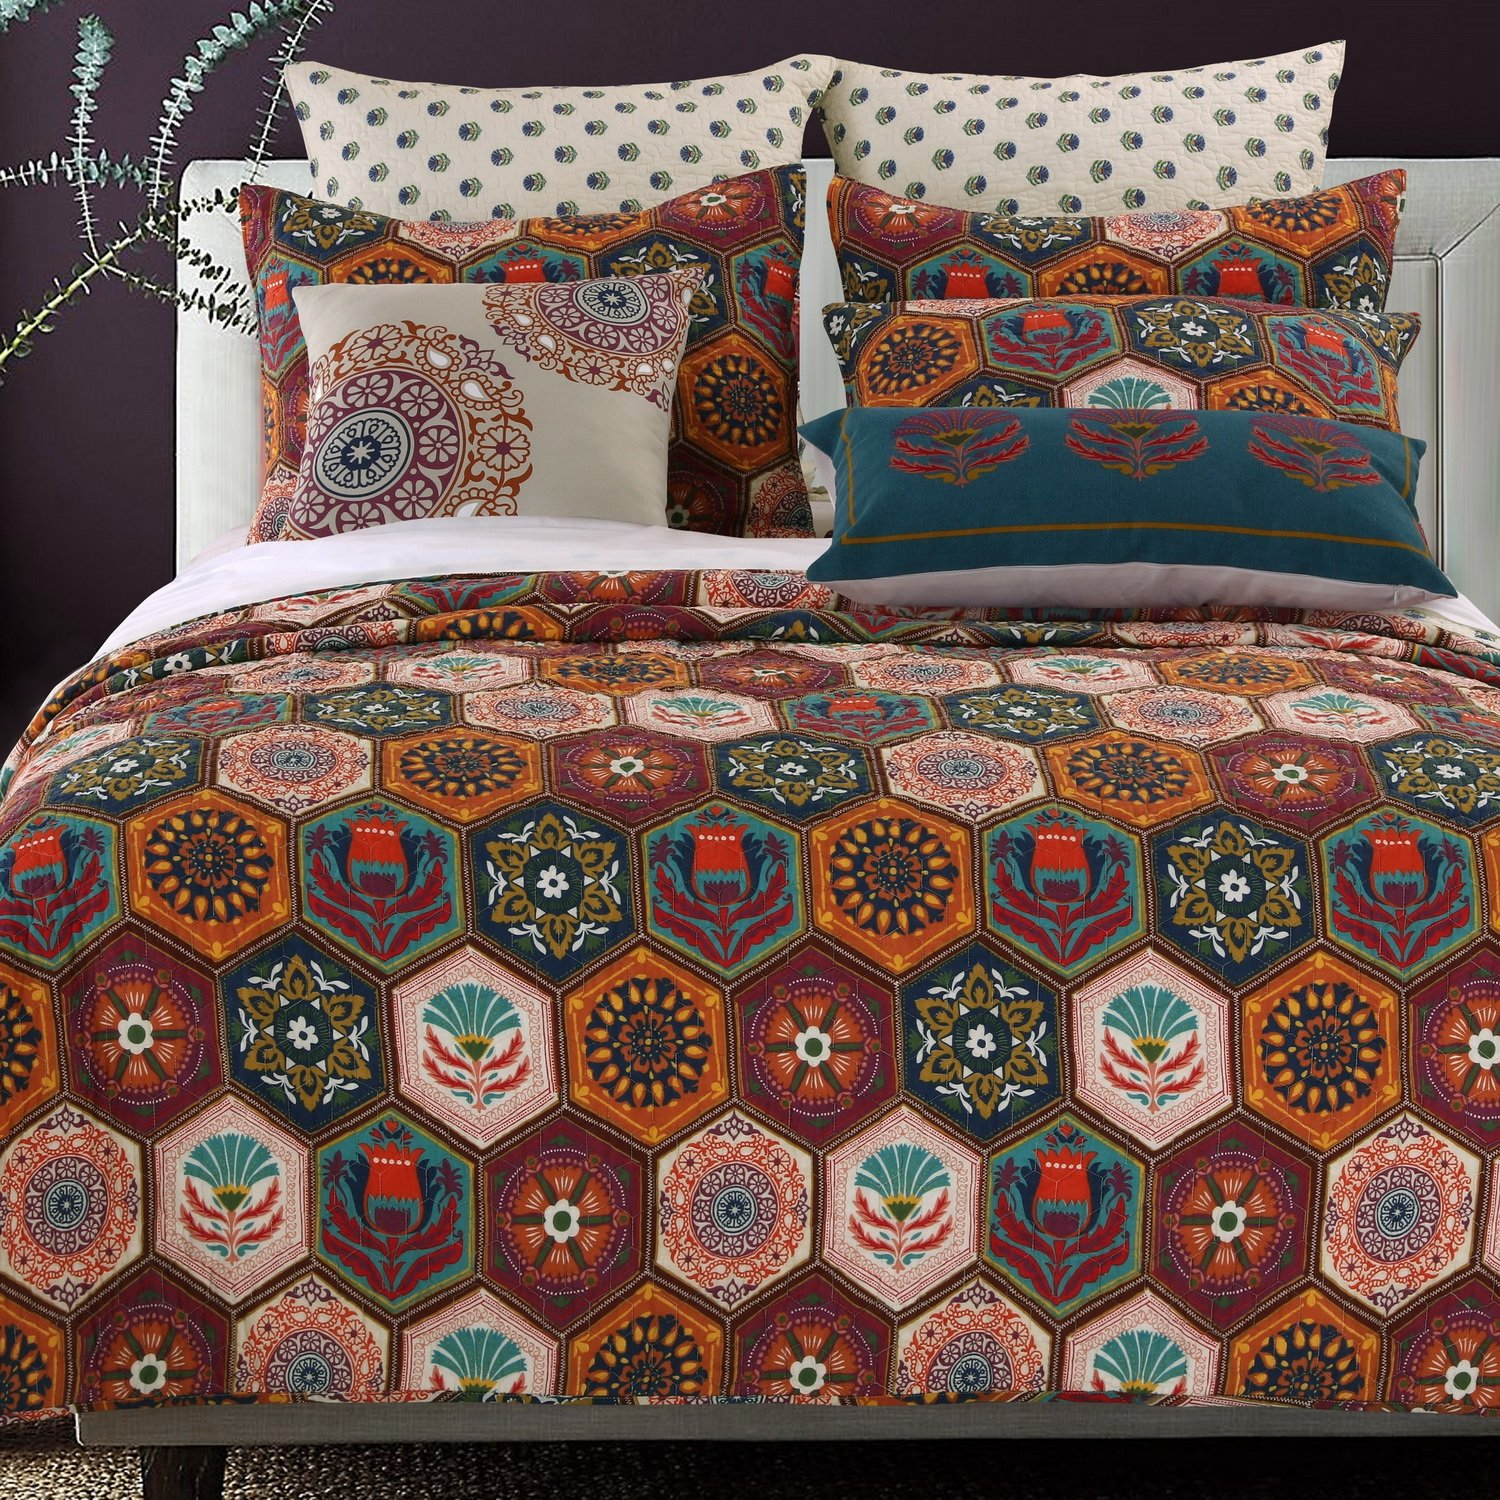 Brown and orange bedding - Amazon Com Boho Moroccan Quilt Set With Shams Geometric Pattern Medallion Mandala Earth Tones Brown Orange 100 Cotton Luxury Reversible 3 Piece King Size